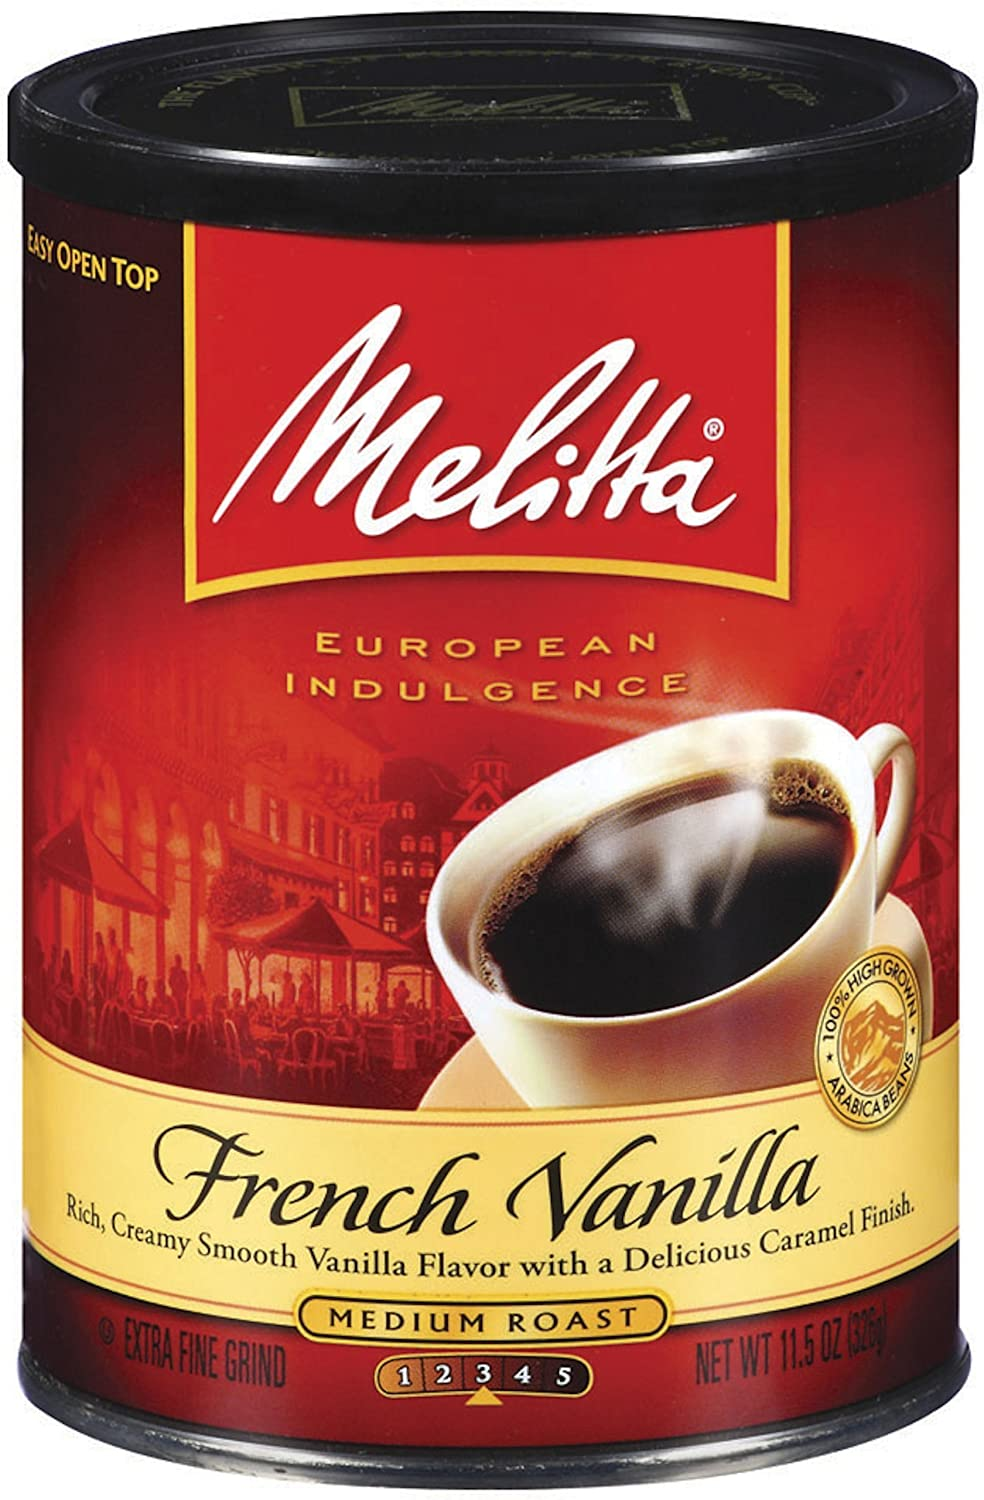 Melitta French Vanilla Medium Roast Ground Coffee, 11.5-Ounce Cans (Pack of 4)